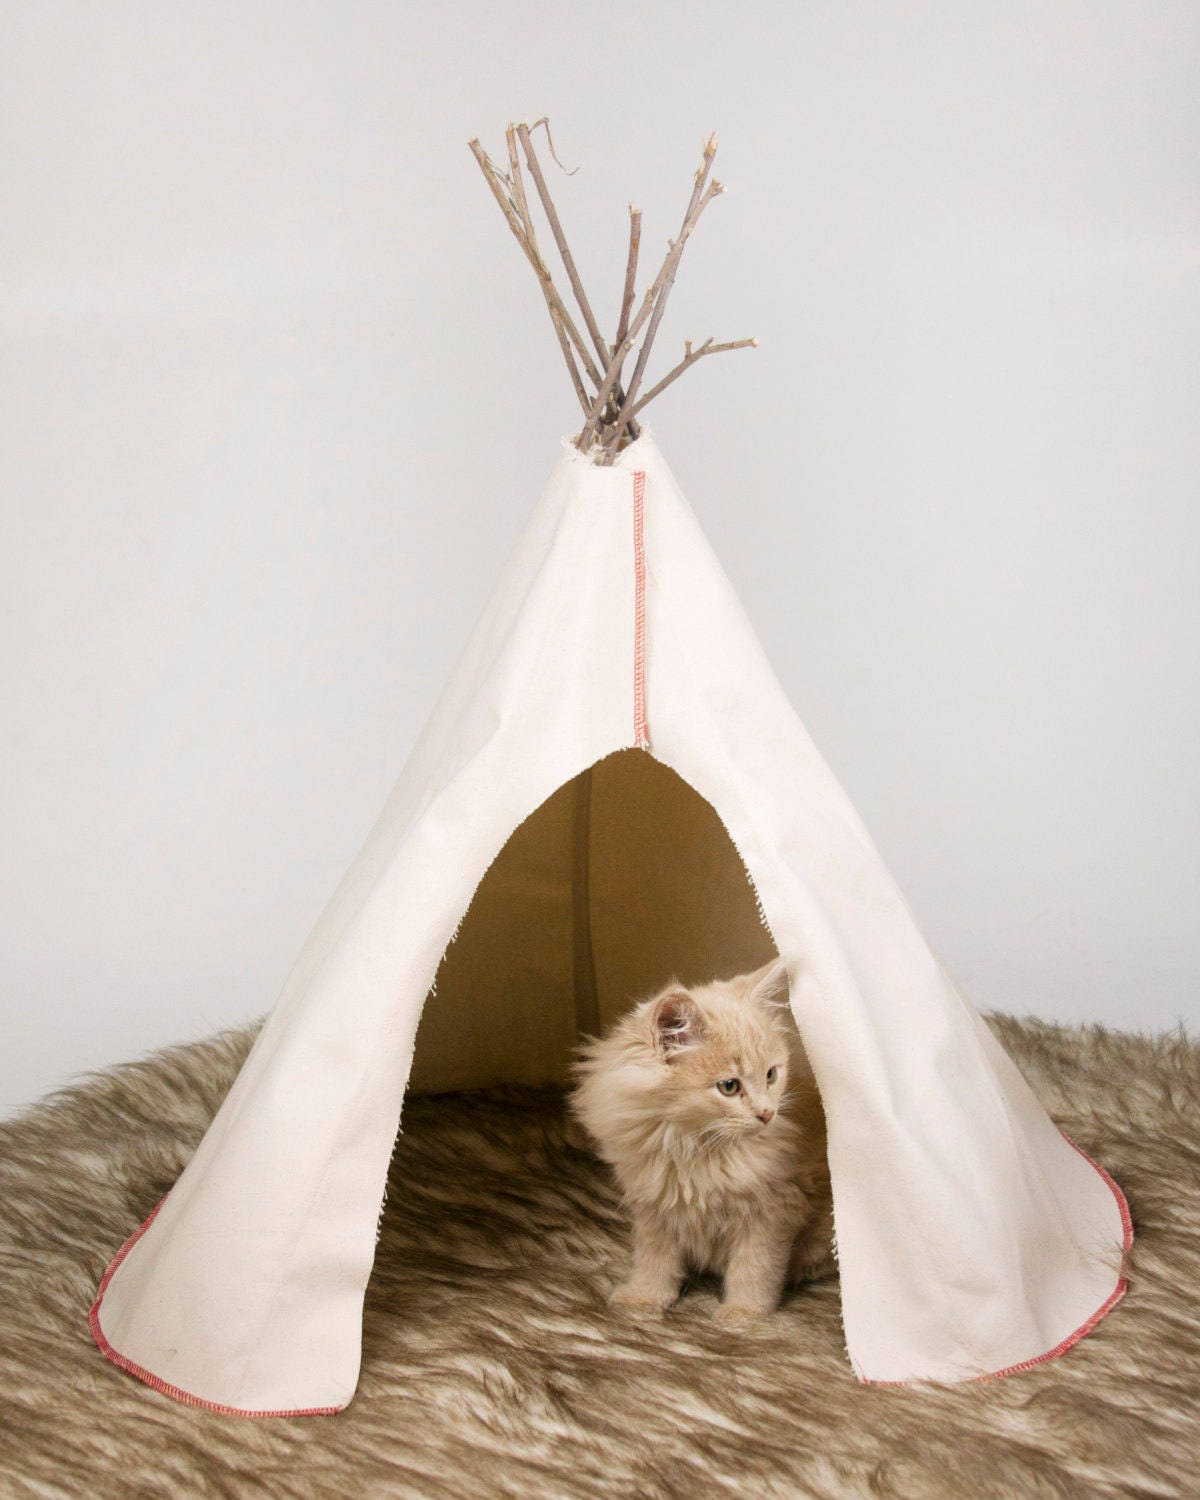 Buckskin Canvas Plain Pet Tipi For Cats Or Small Dogs With